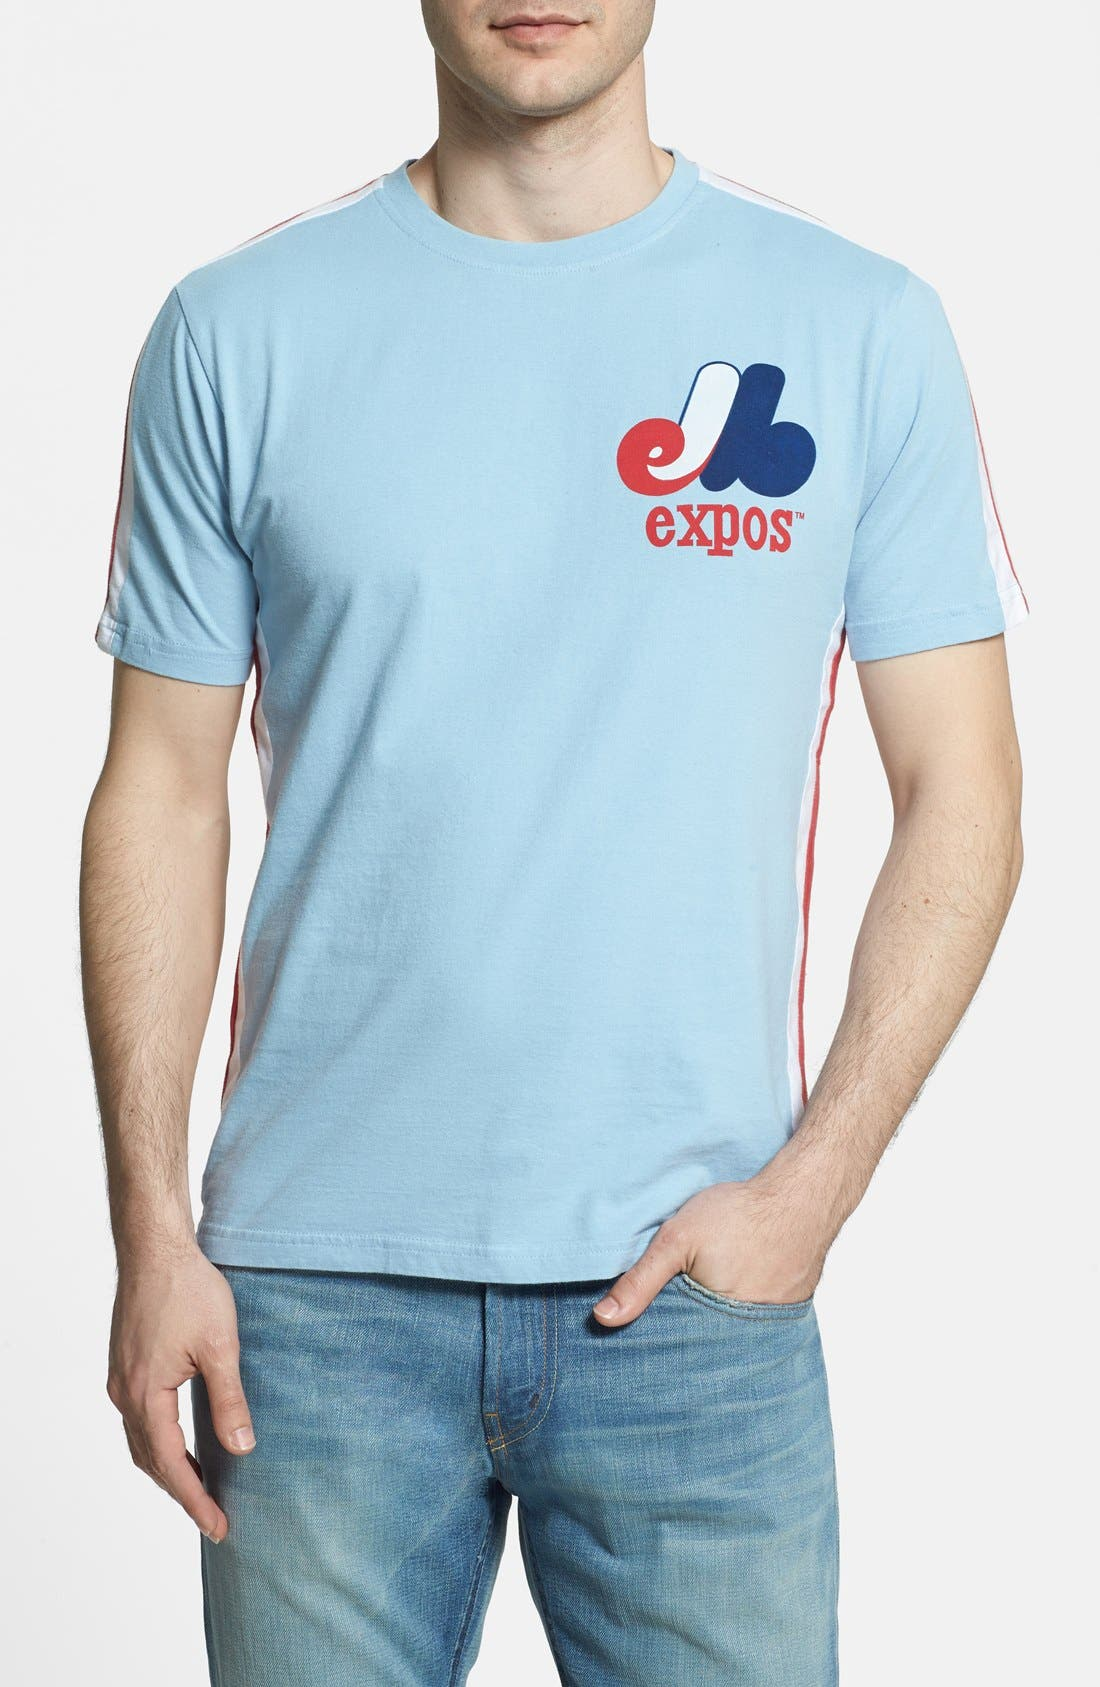 Main Image - Red Jacket 'Expos - Remote Control' T-Shirt (Men)